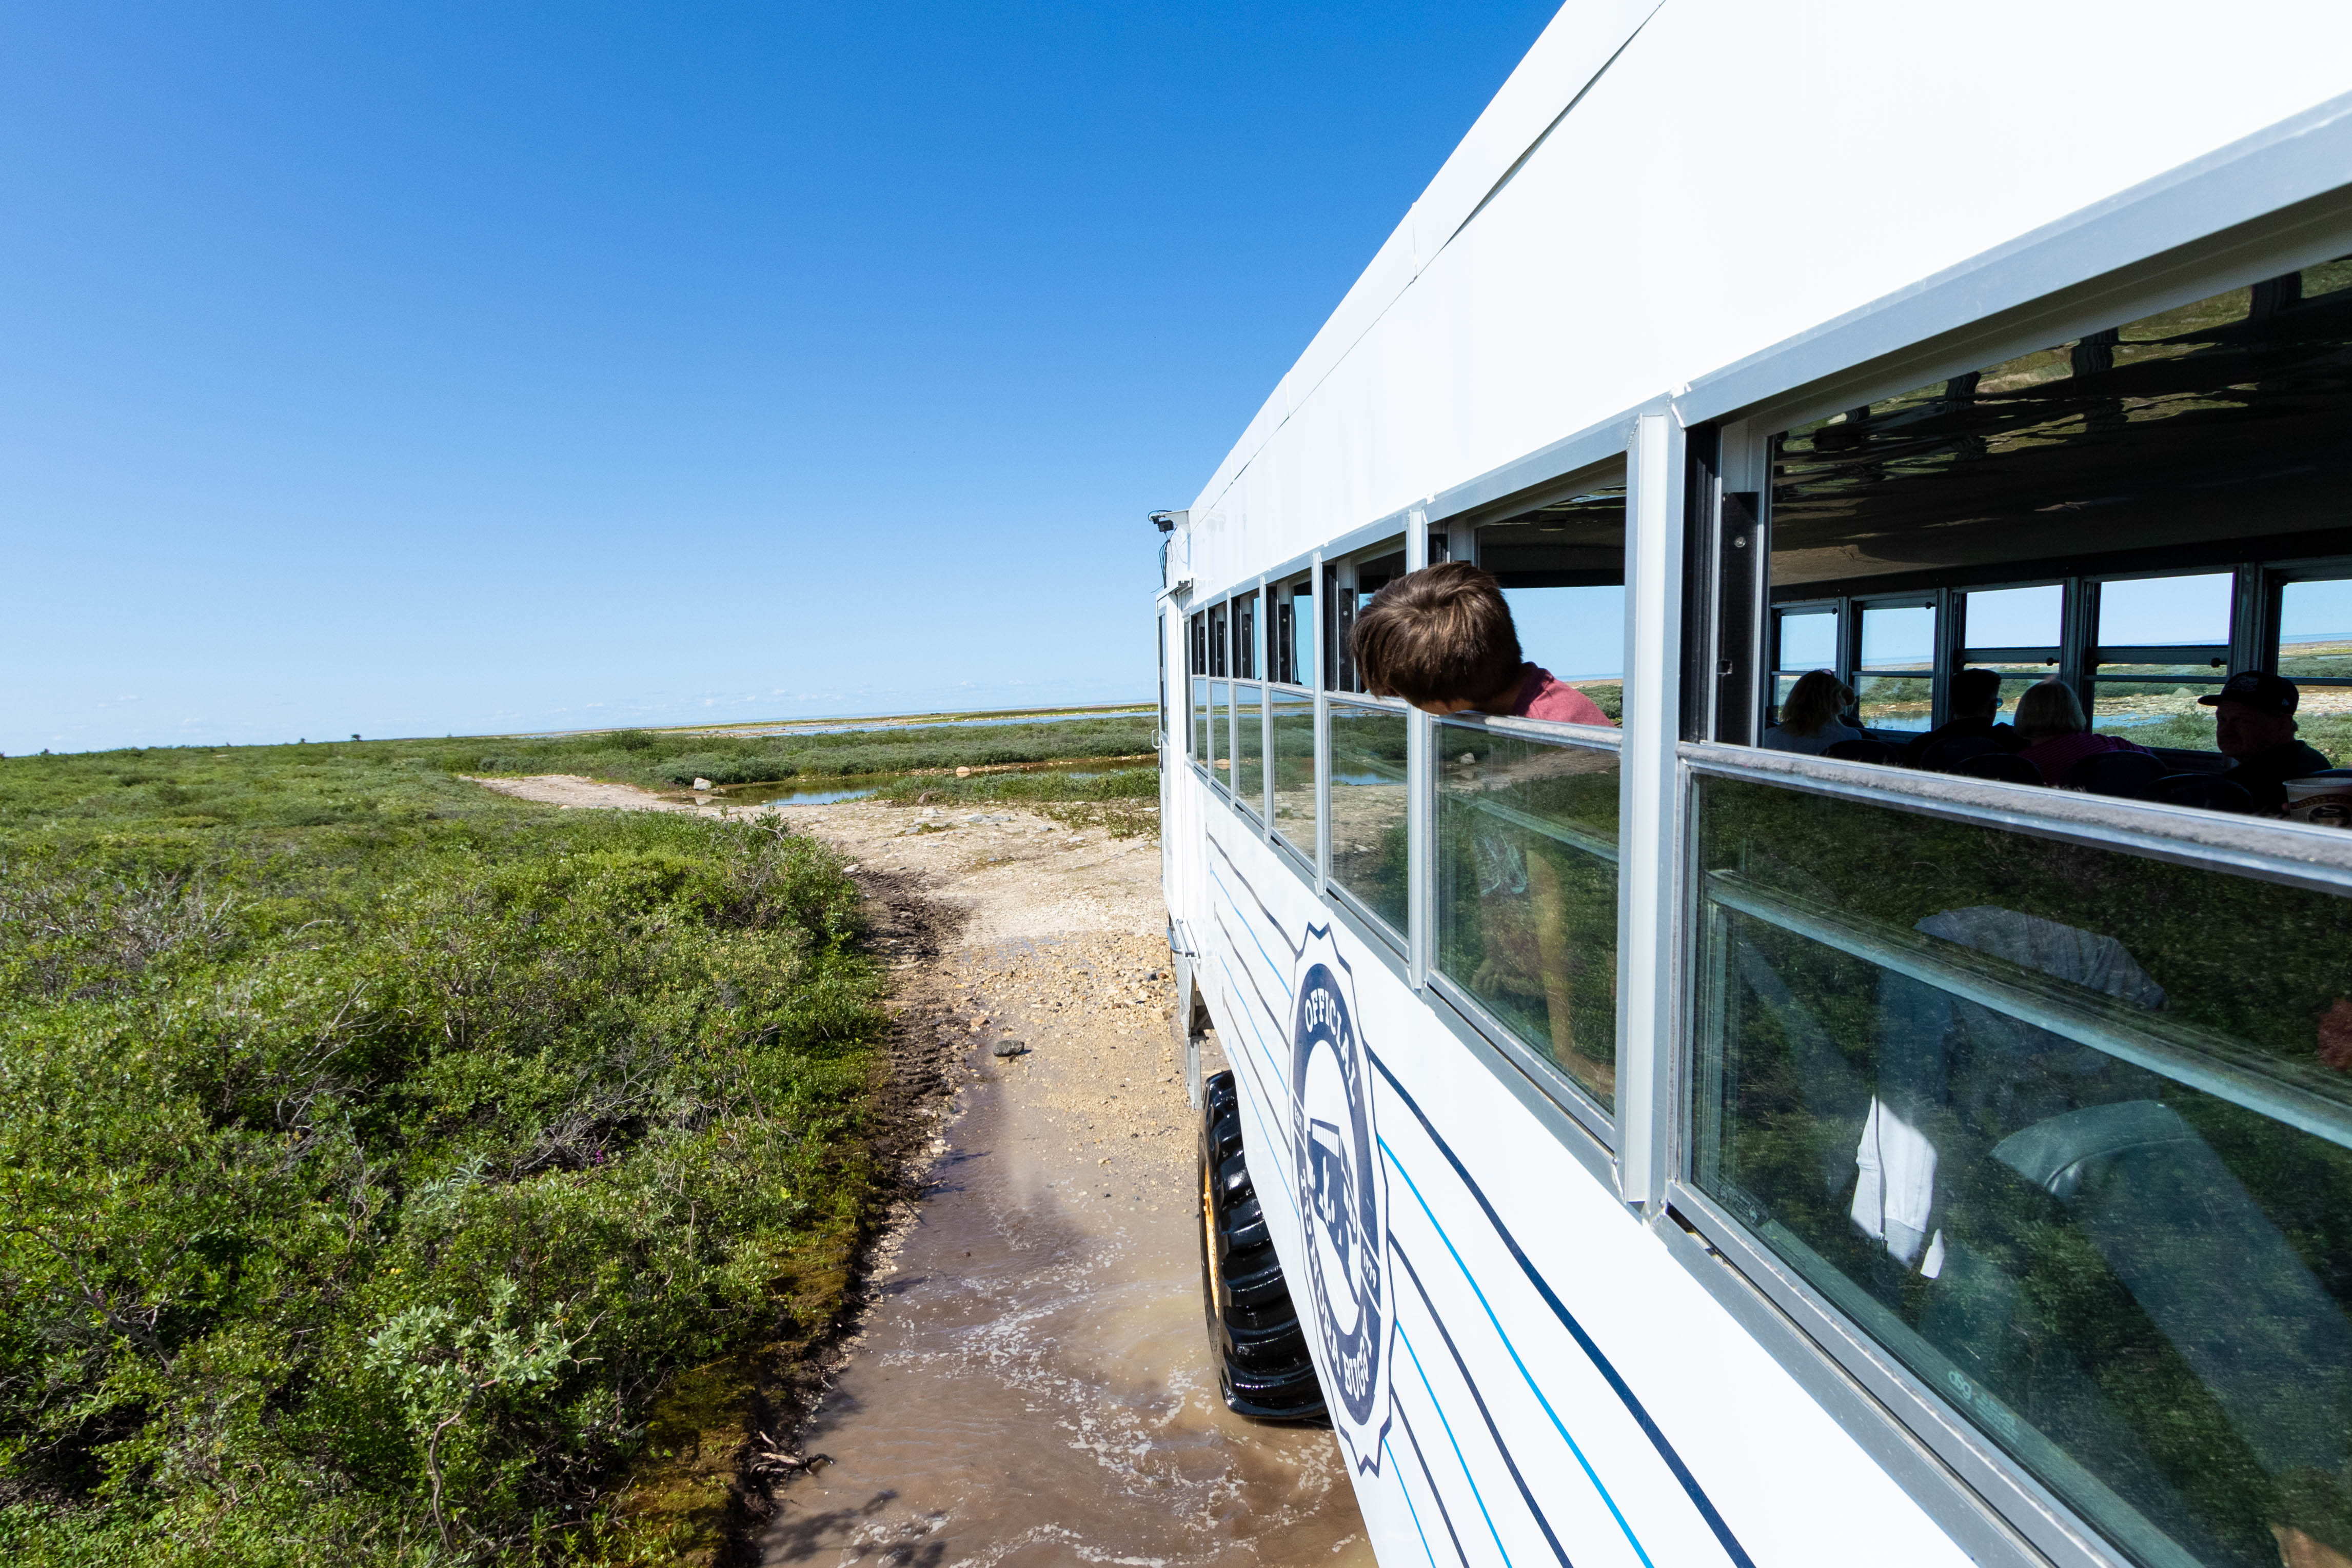 View from the Tundra Buggy in Churchill, Manitoba.